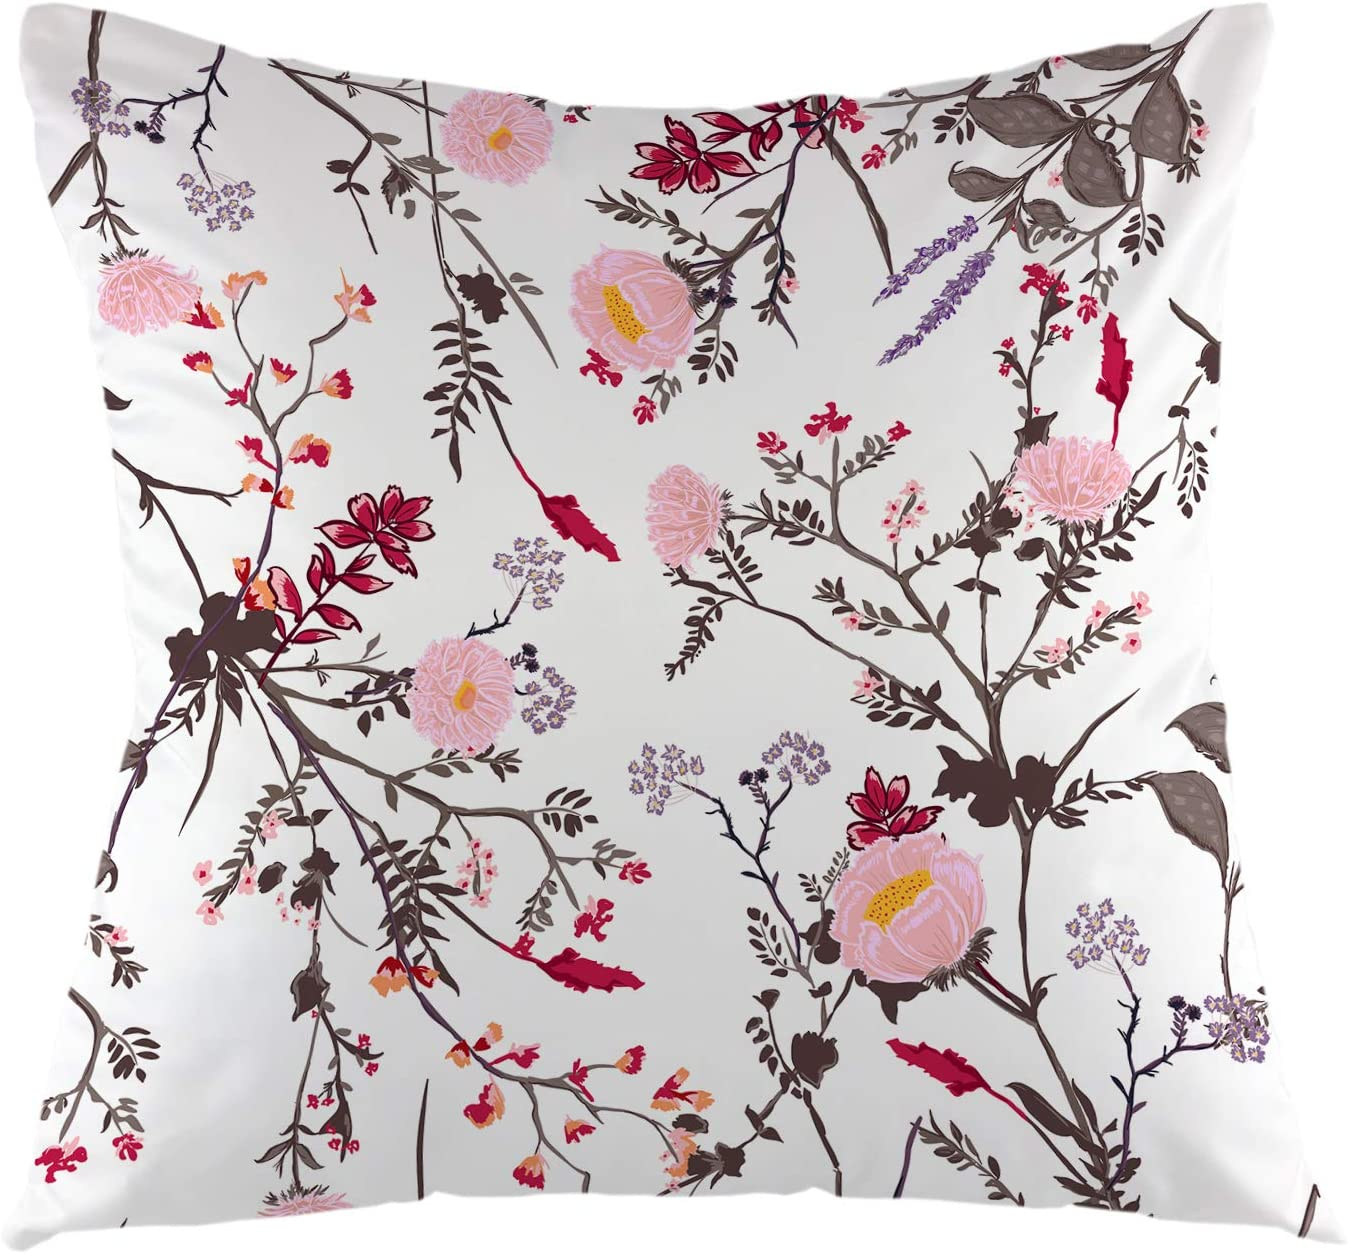 Amazon Com Ofloral Trendy Floral Throw Pillow Cover Tropical Botanical Flowers Square Cushion Case For Sofa Couch Car Bedroom Living Room 18 X 18 Inch Home Kitchen